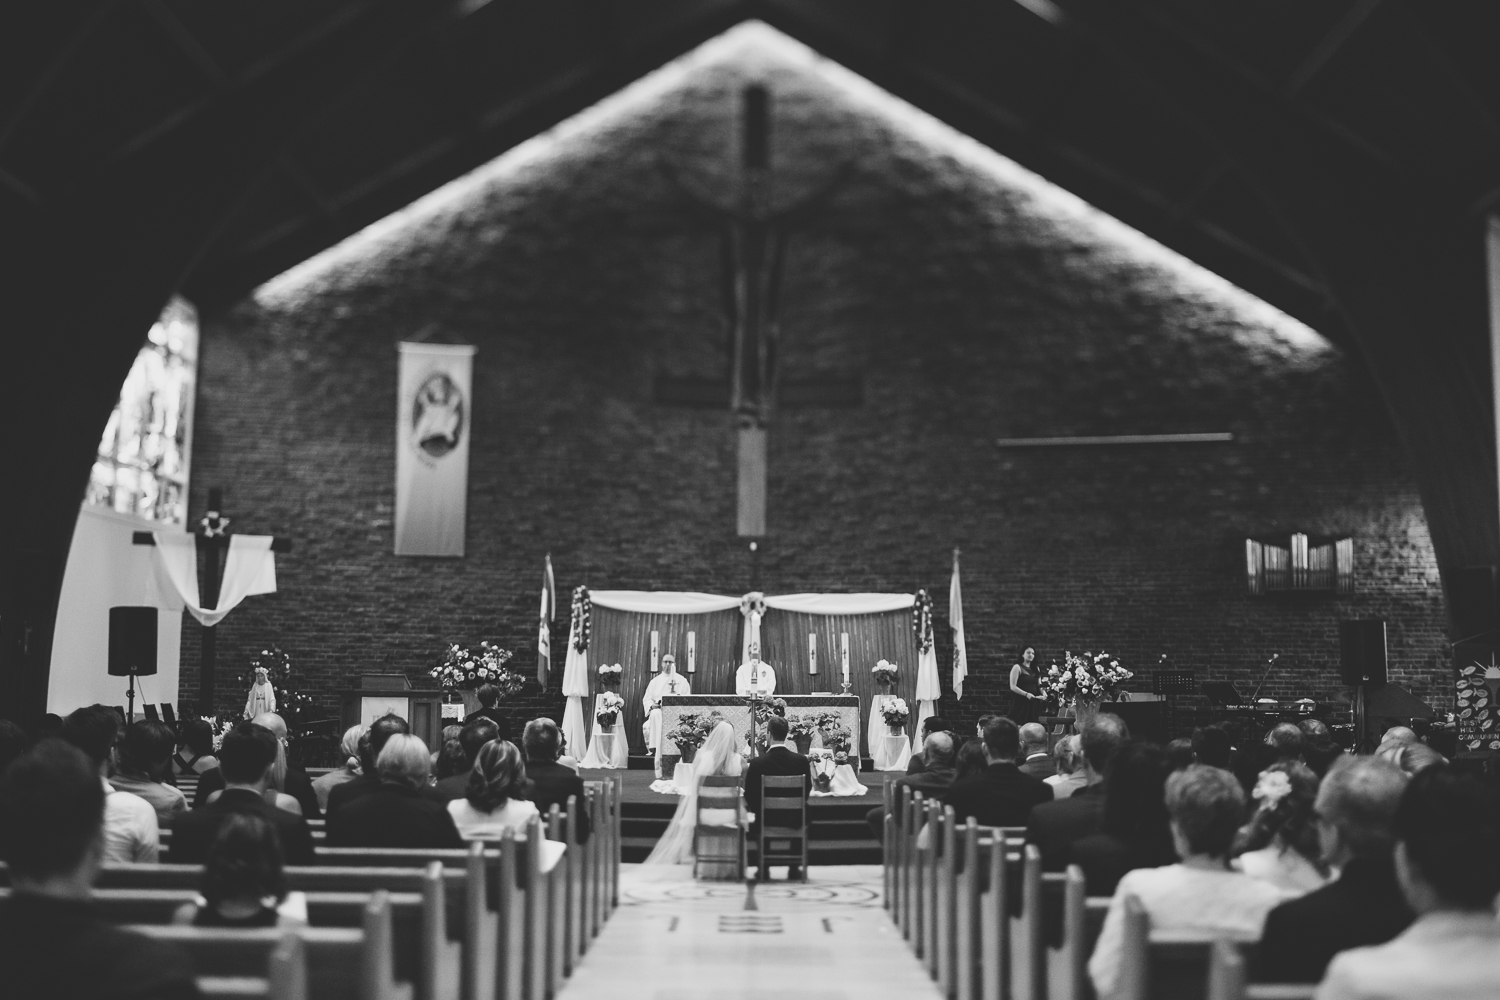 Nativity of Our Lord, Etobicoke